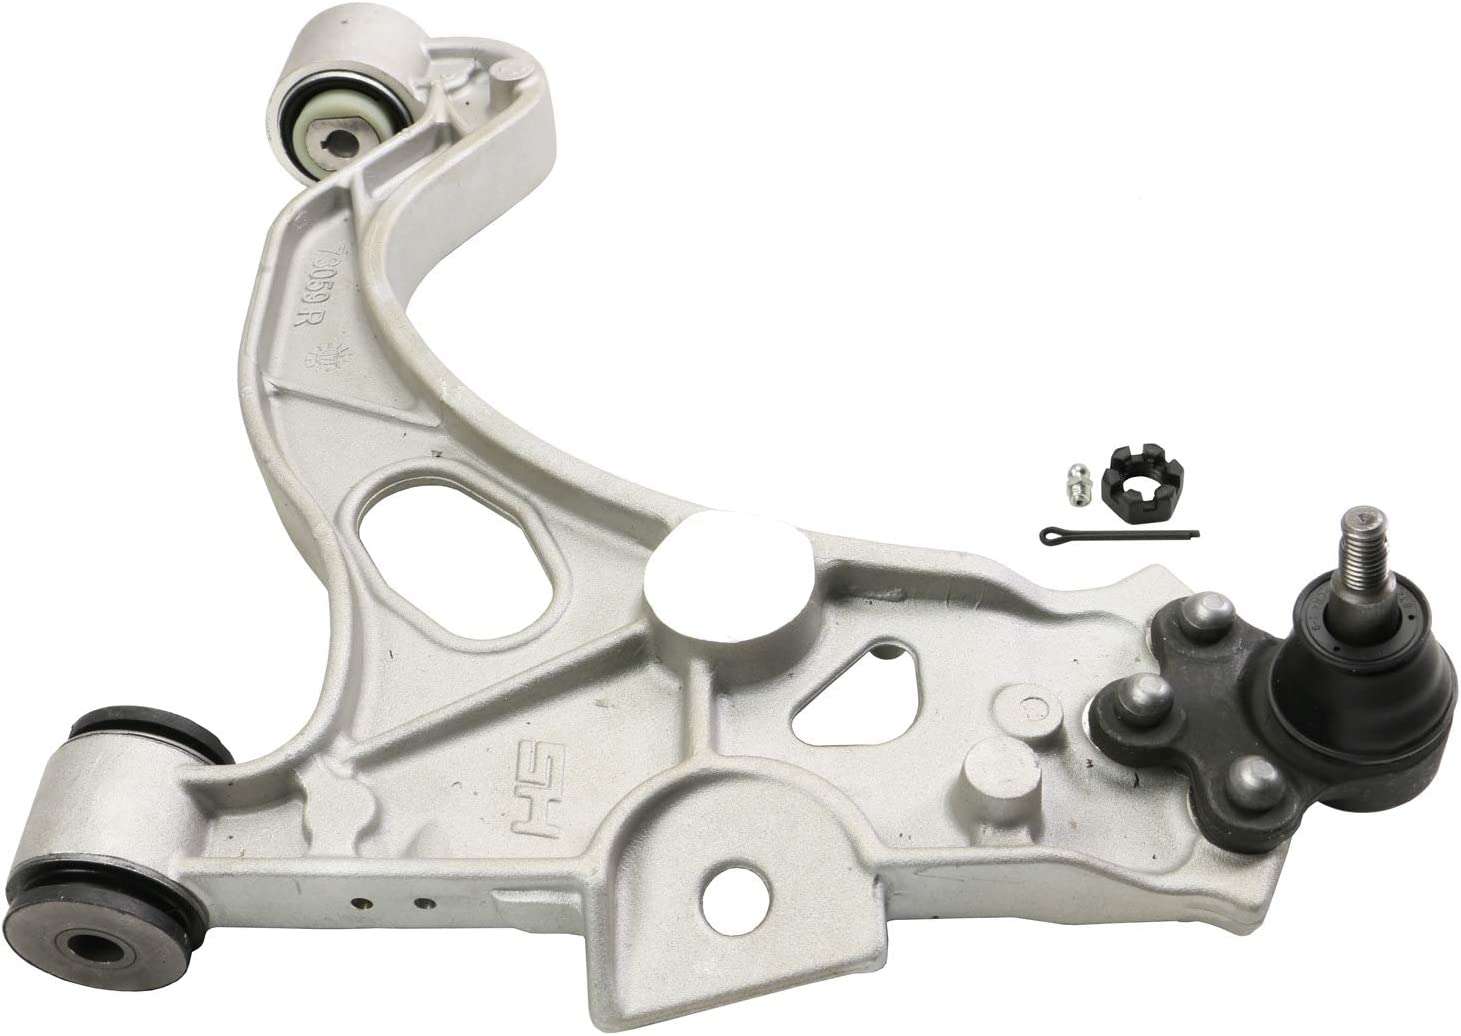 Rk622892 Moog Suspension Control Arm And Ball Joint Assembly P//N:Rk622892